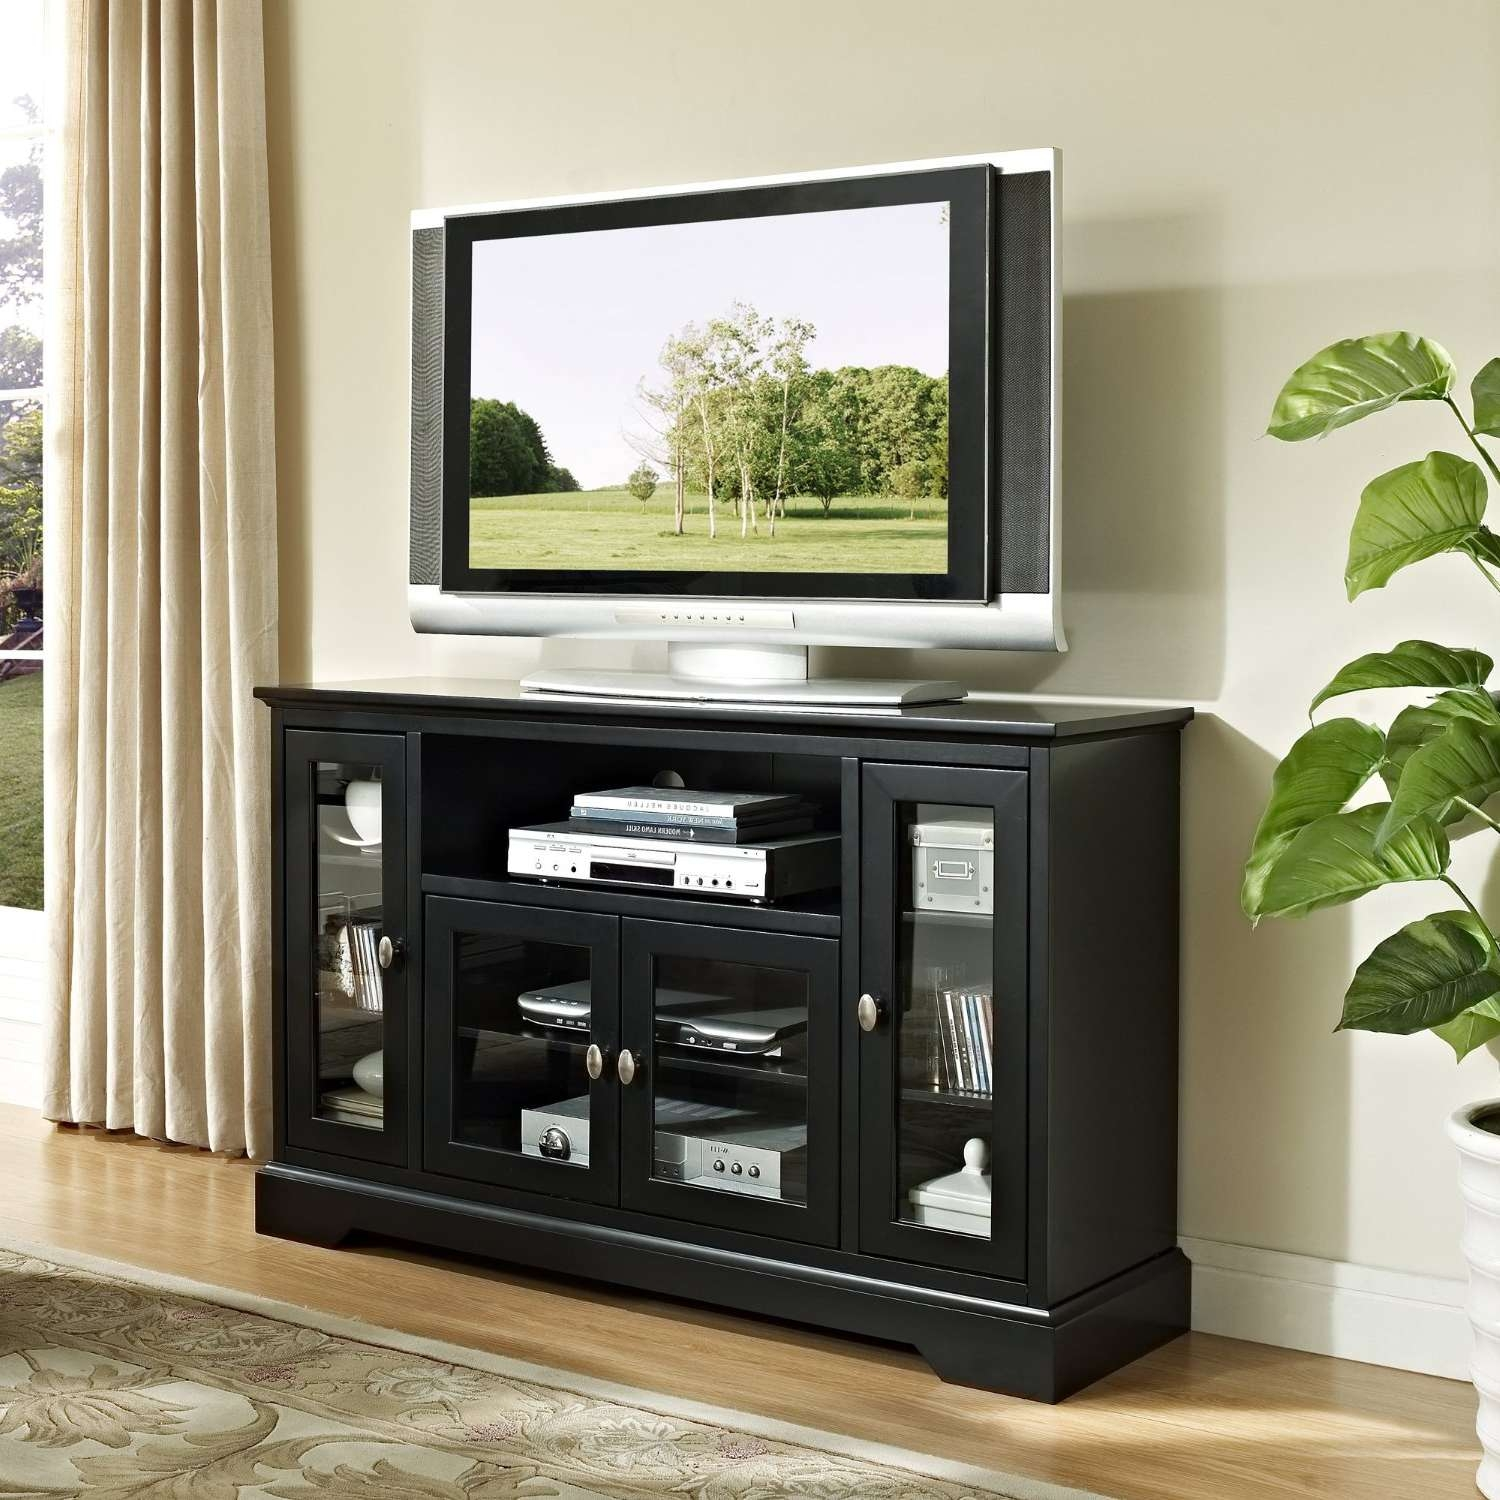 Light Wood Tv Stand Simple Room With Ikea Besta Media Cabinet Of Pertaining To Wooden Tv Cabinets With Glass Doors (View 20 of 20)